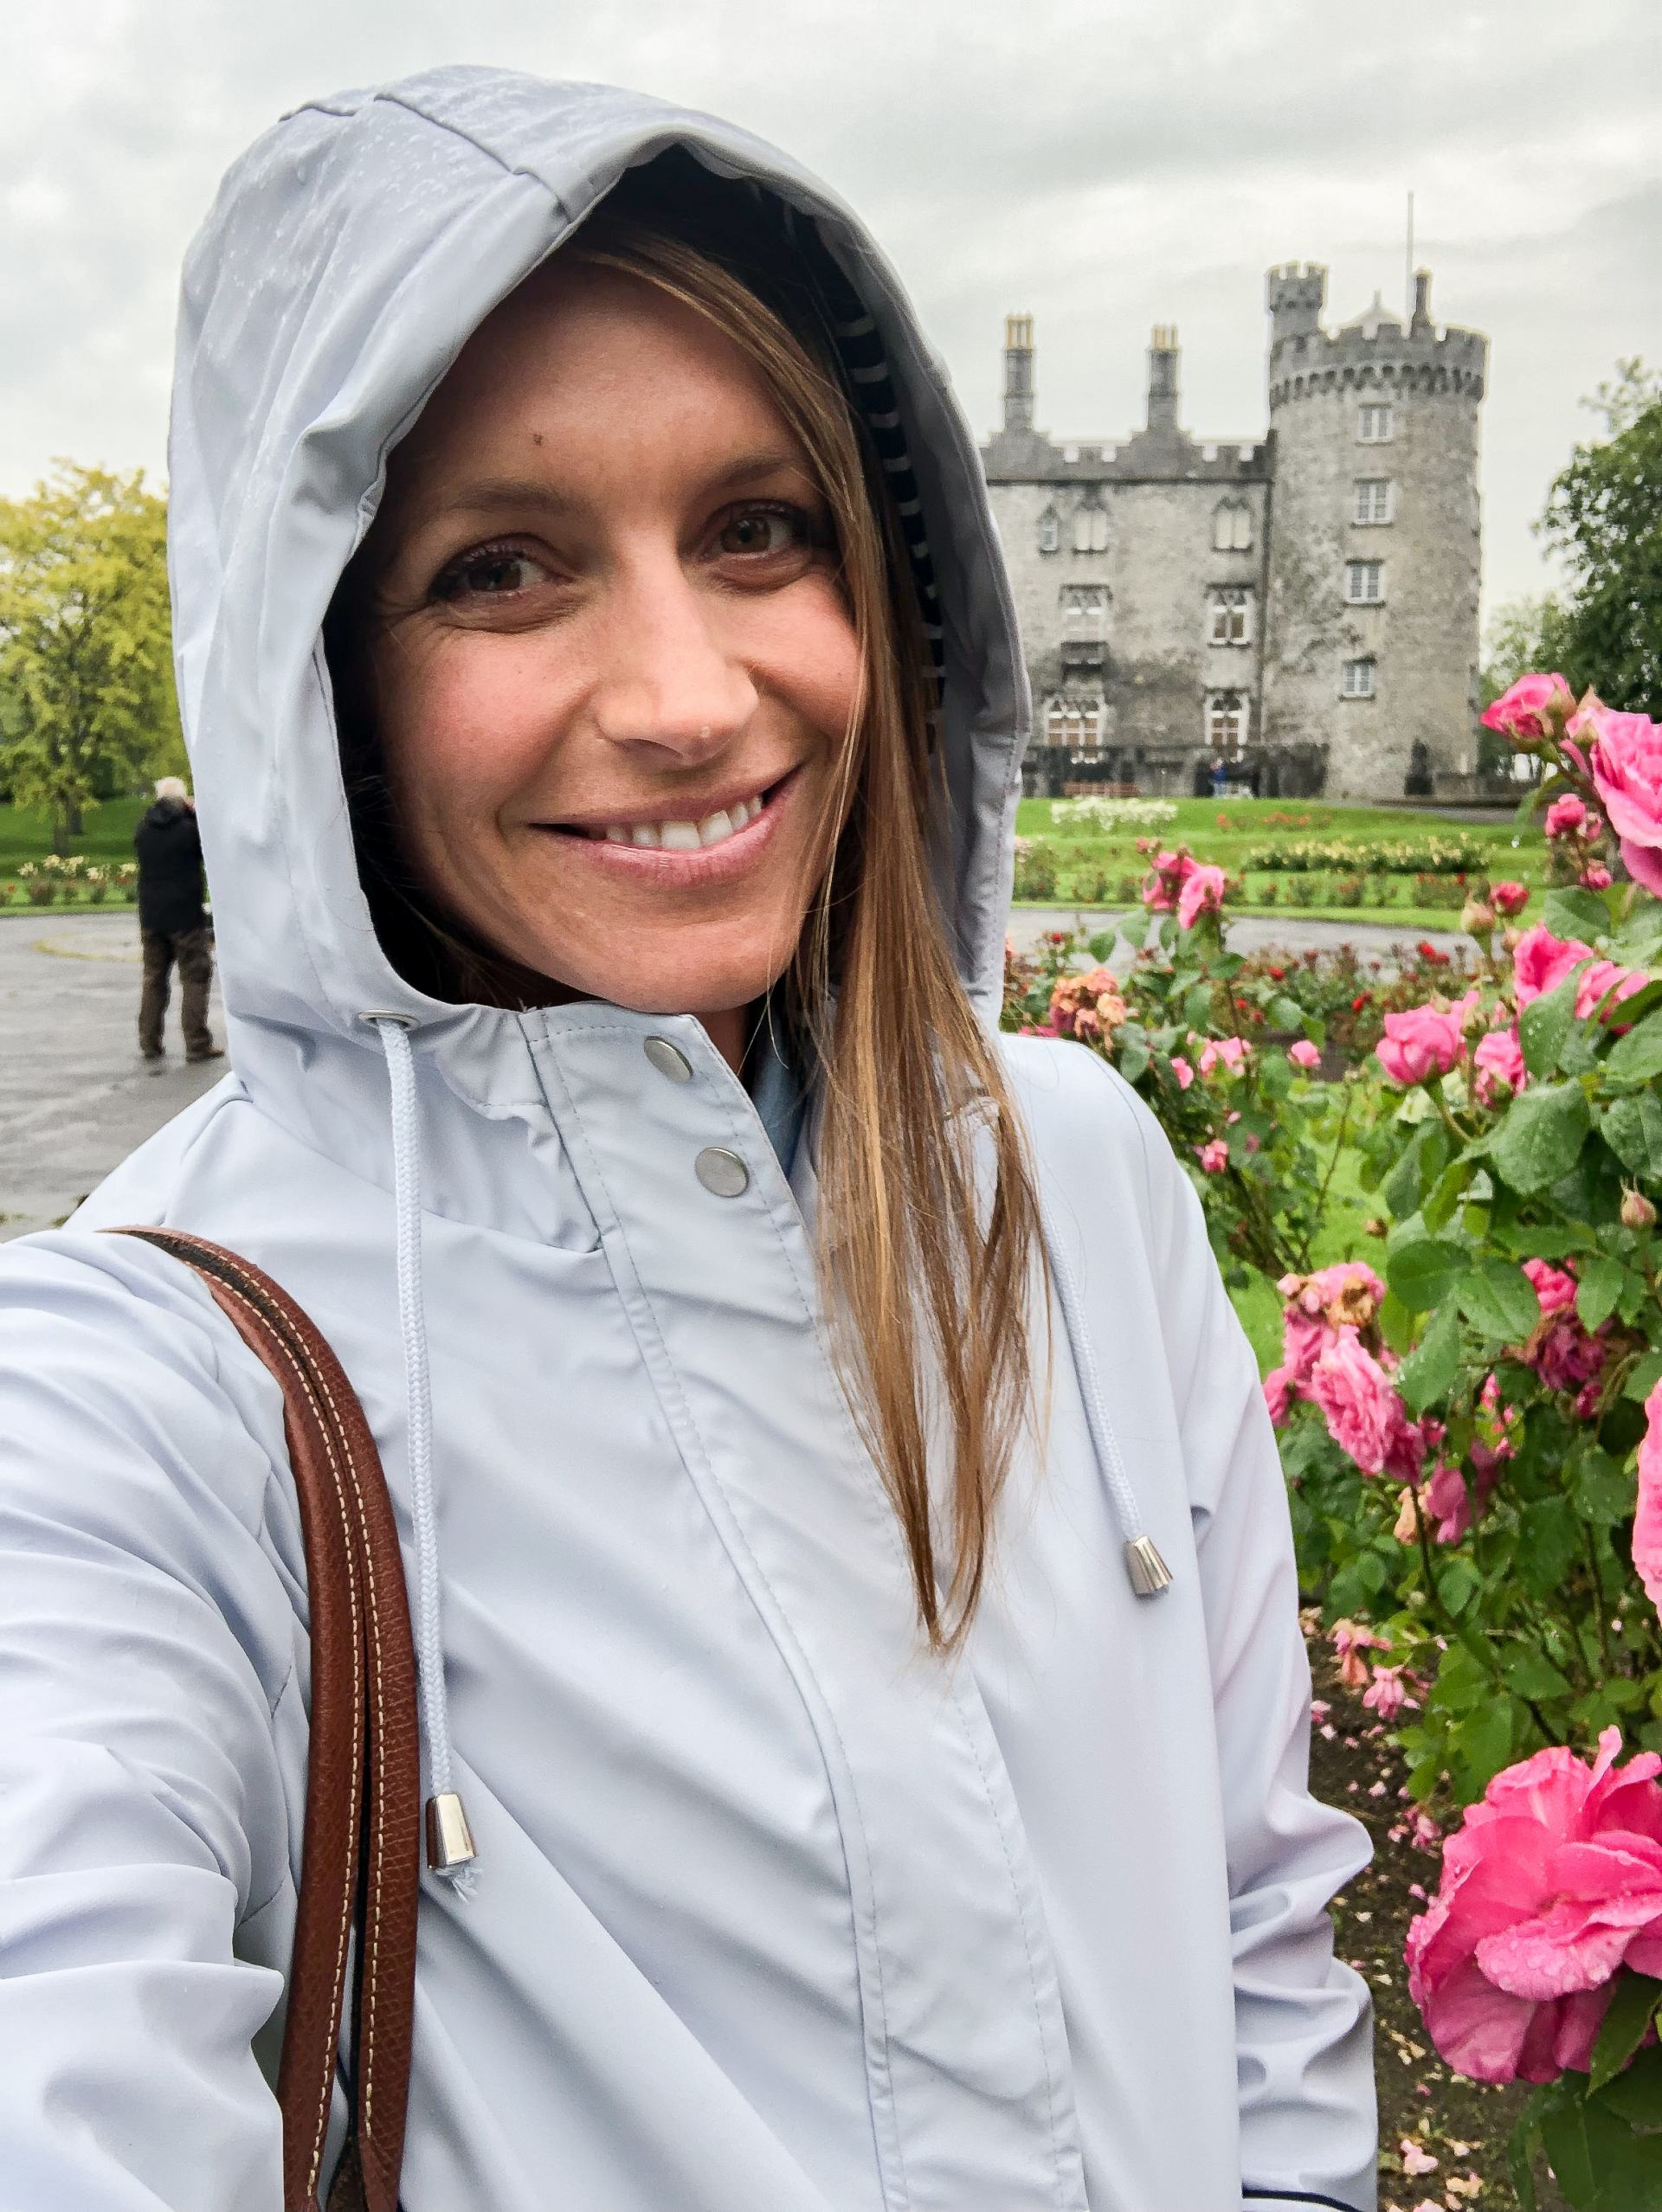 traveling in ireland - travel style - travel outfit inspo - kilkenny castle